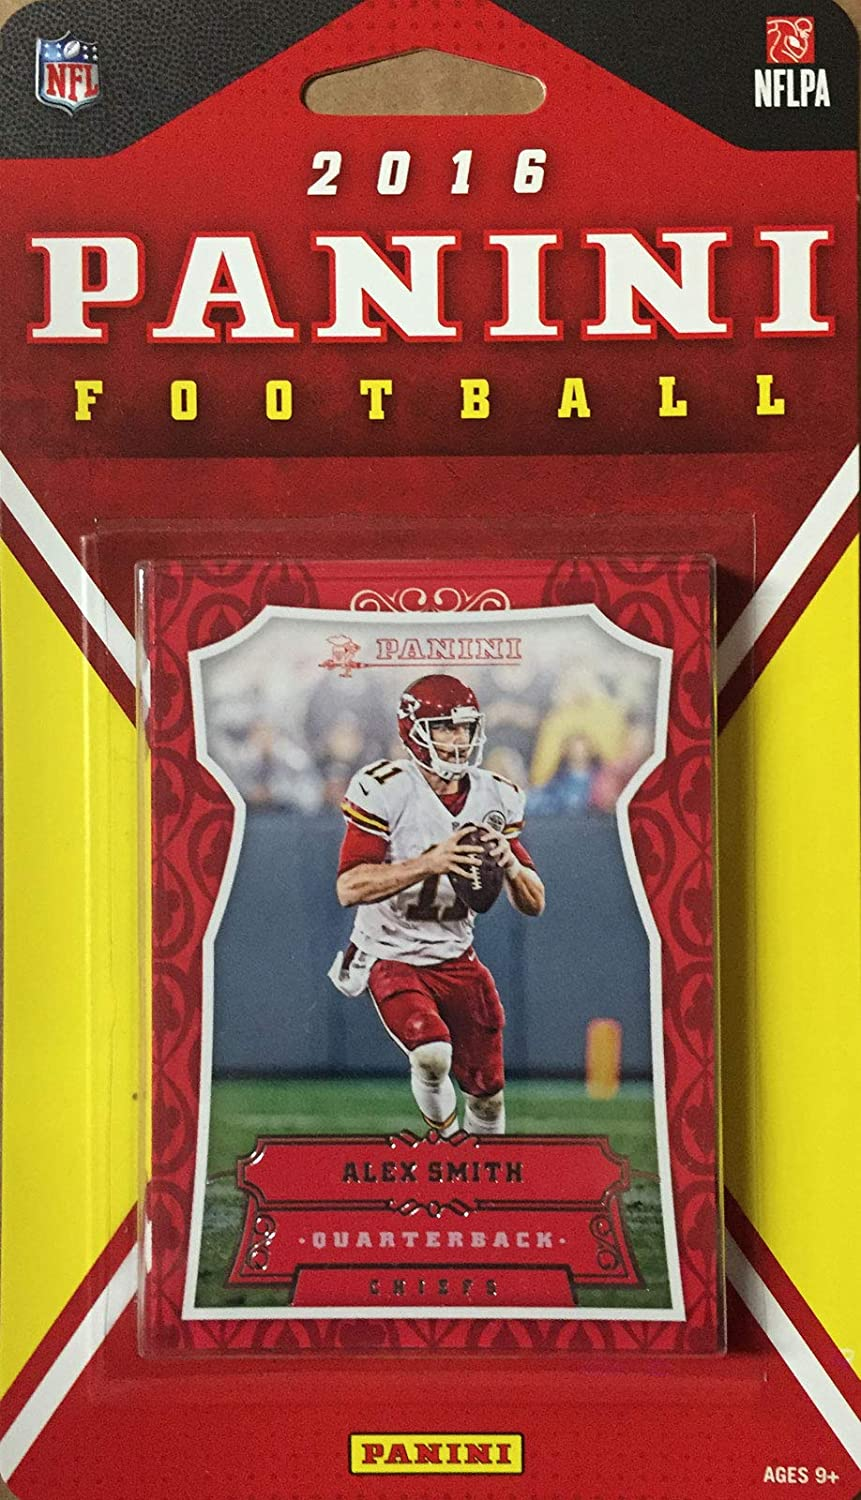 2016 Score and 2016 Panini Team Sets Featuring Your Favorite Players Patrick Mahomes Kansas City Chiefs 3 Factory Sealed Team Set Gift Lot Including 2019 Donruss Tony Gonzalez and Travis Kelce Plus